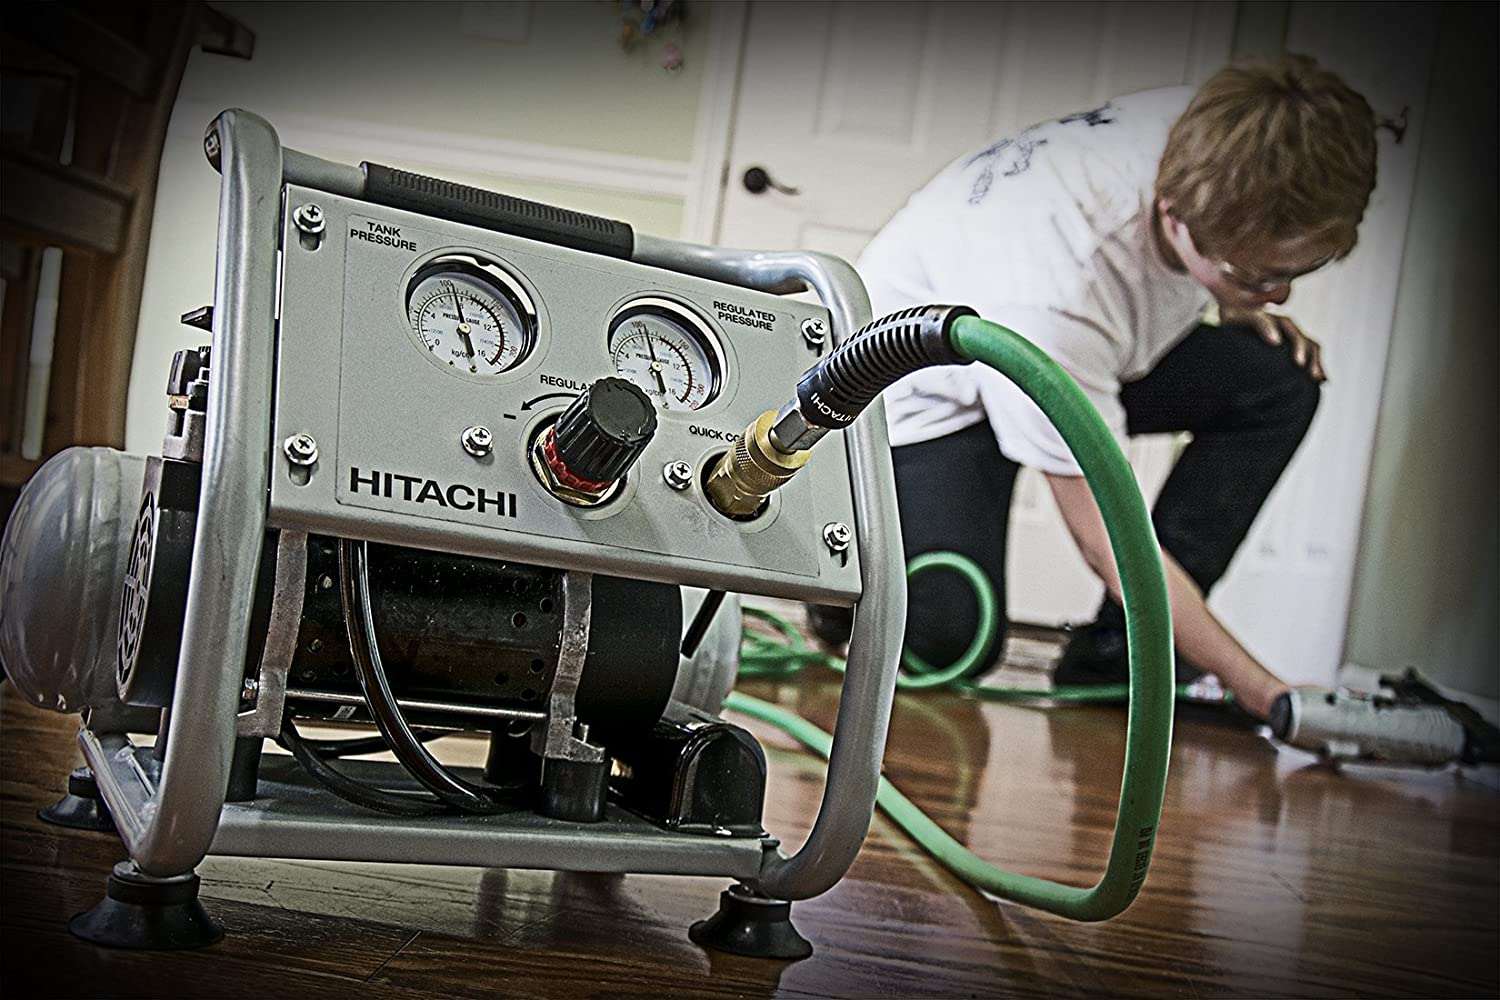 image of Hitachi EC28M in use